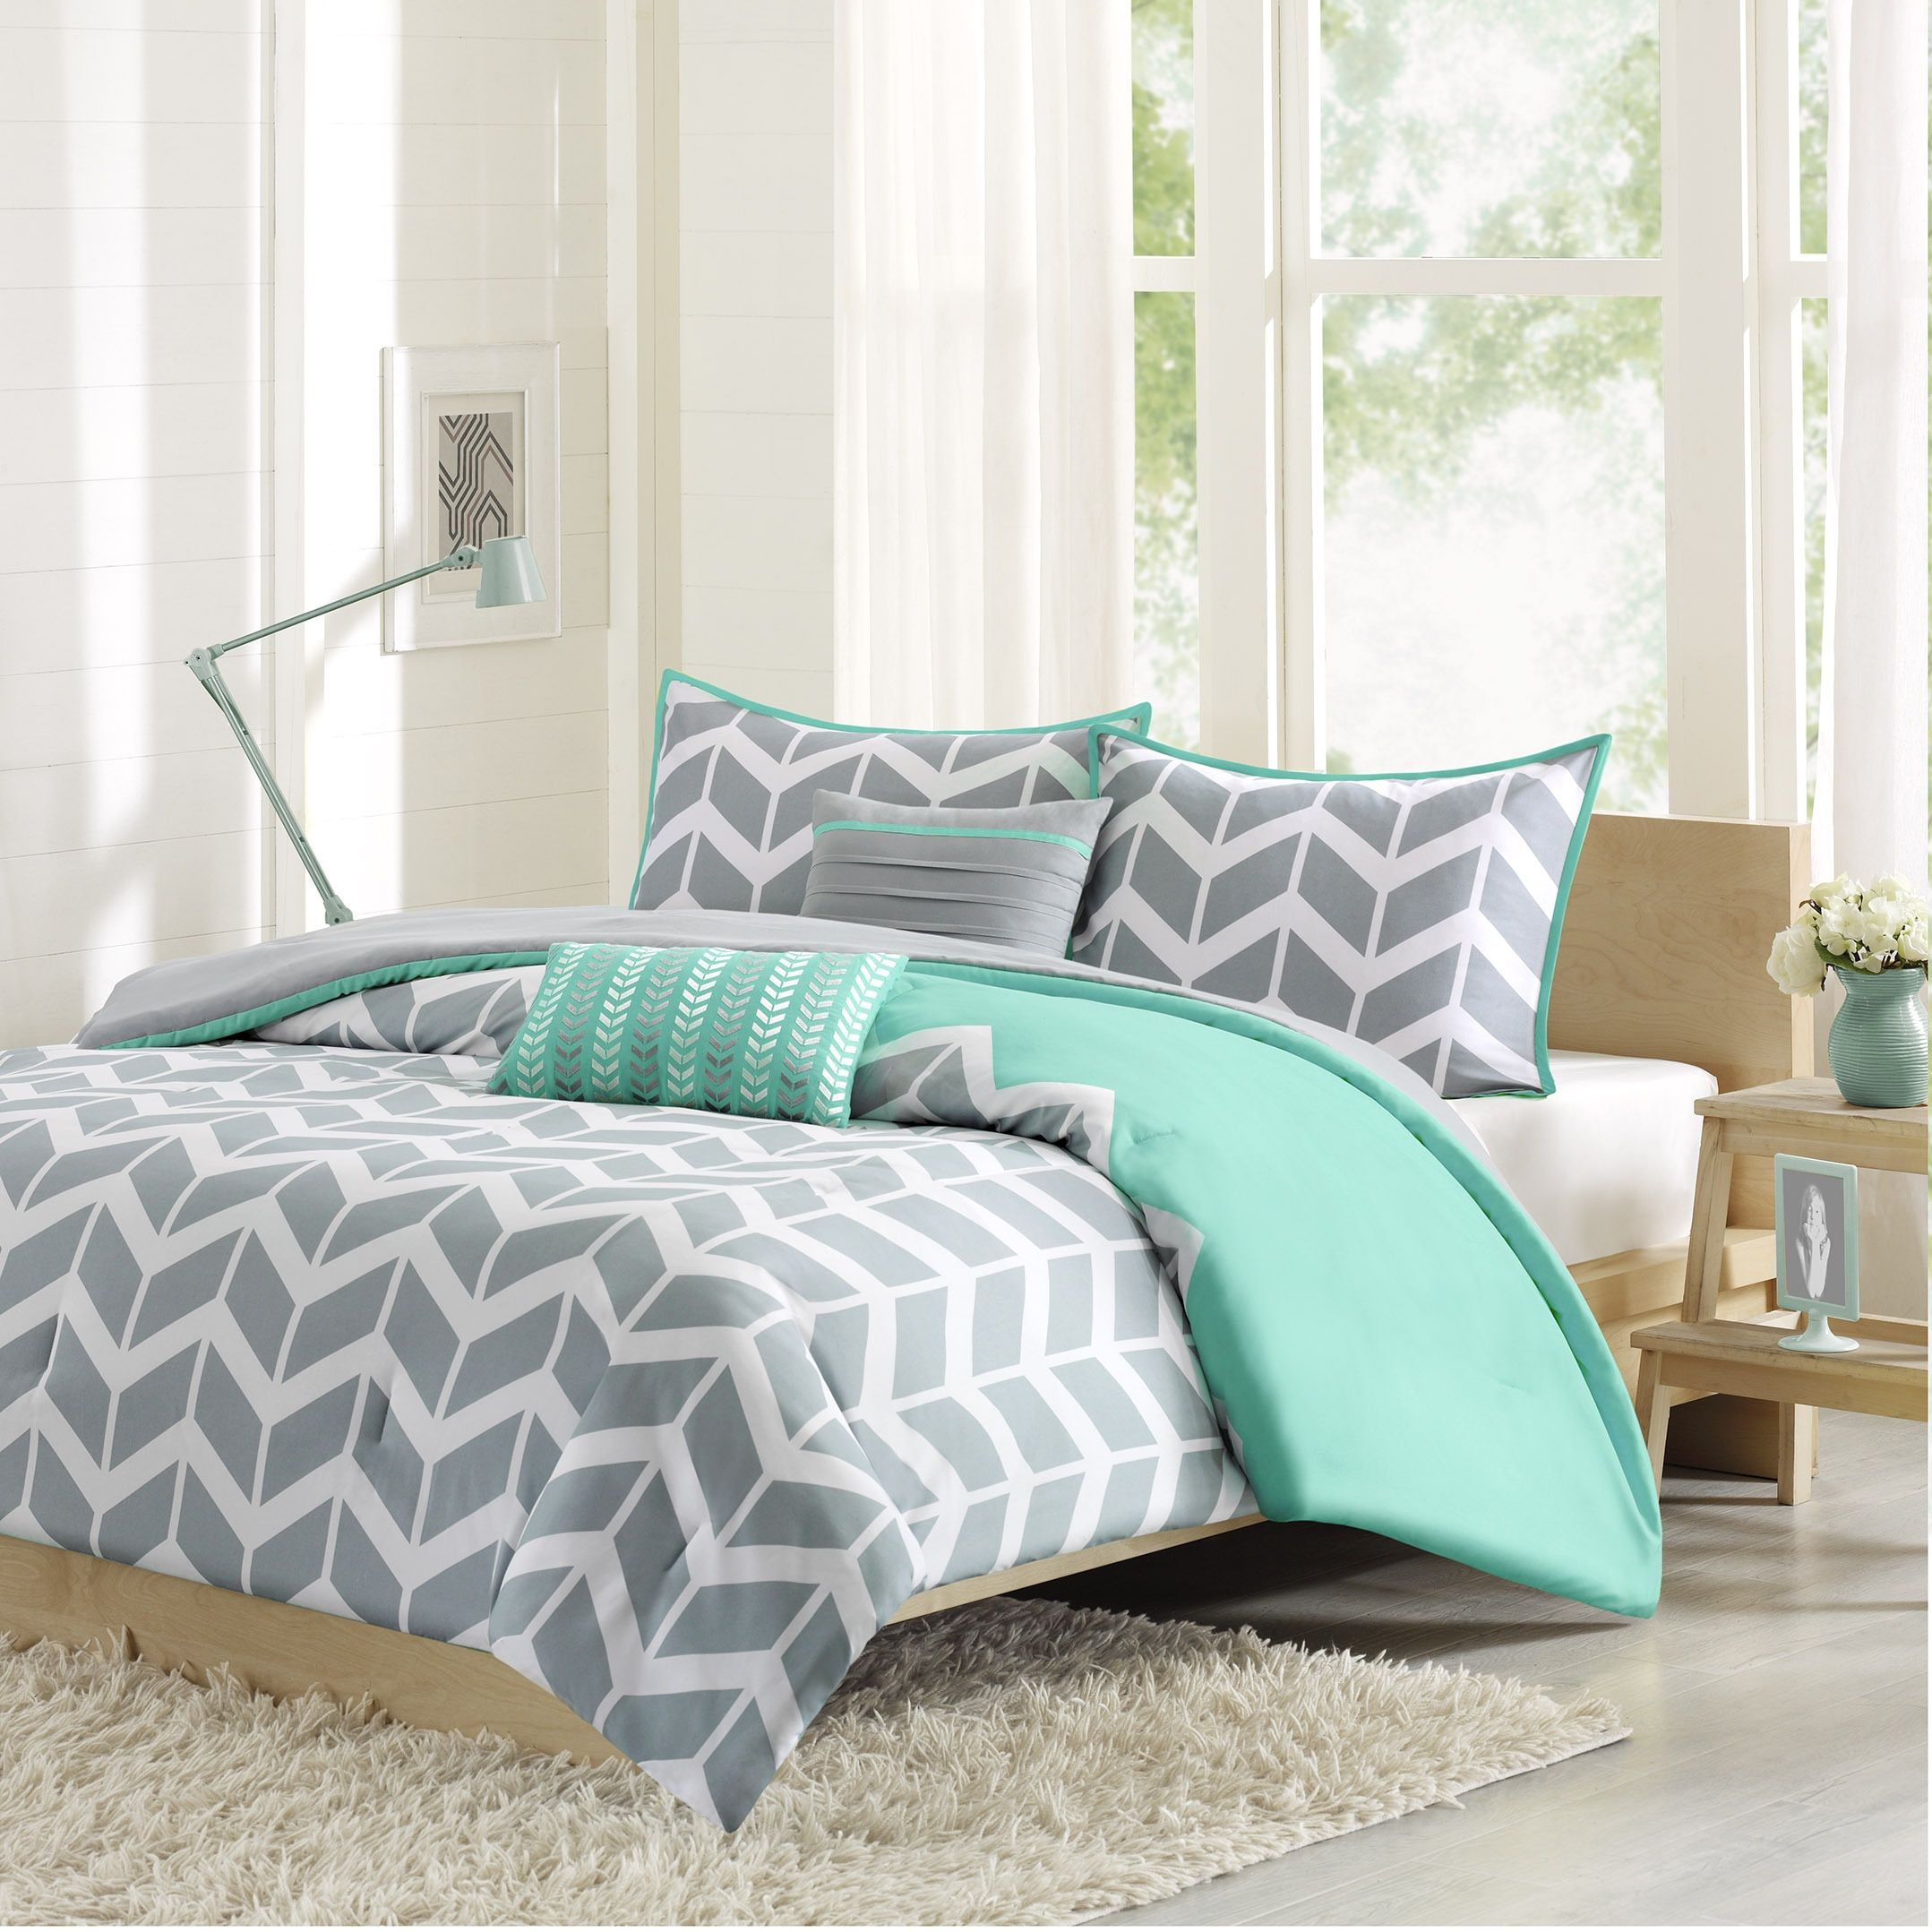 Home Teal Comforter Comforter Sets Chevron Bedding